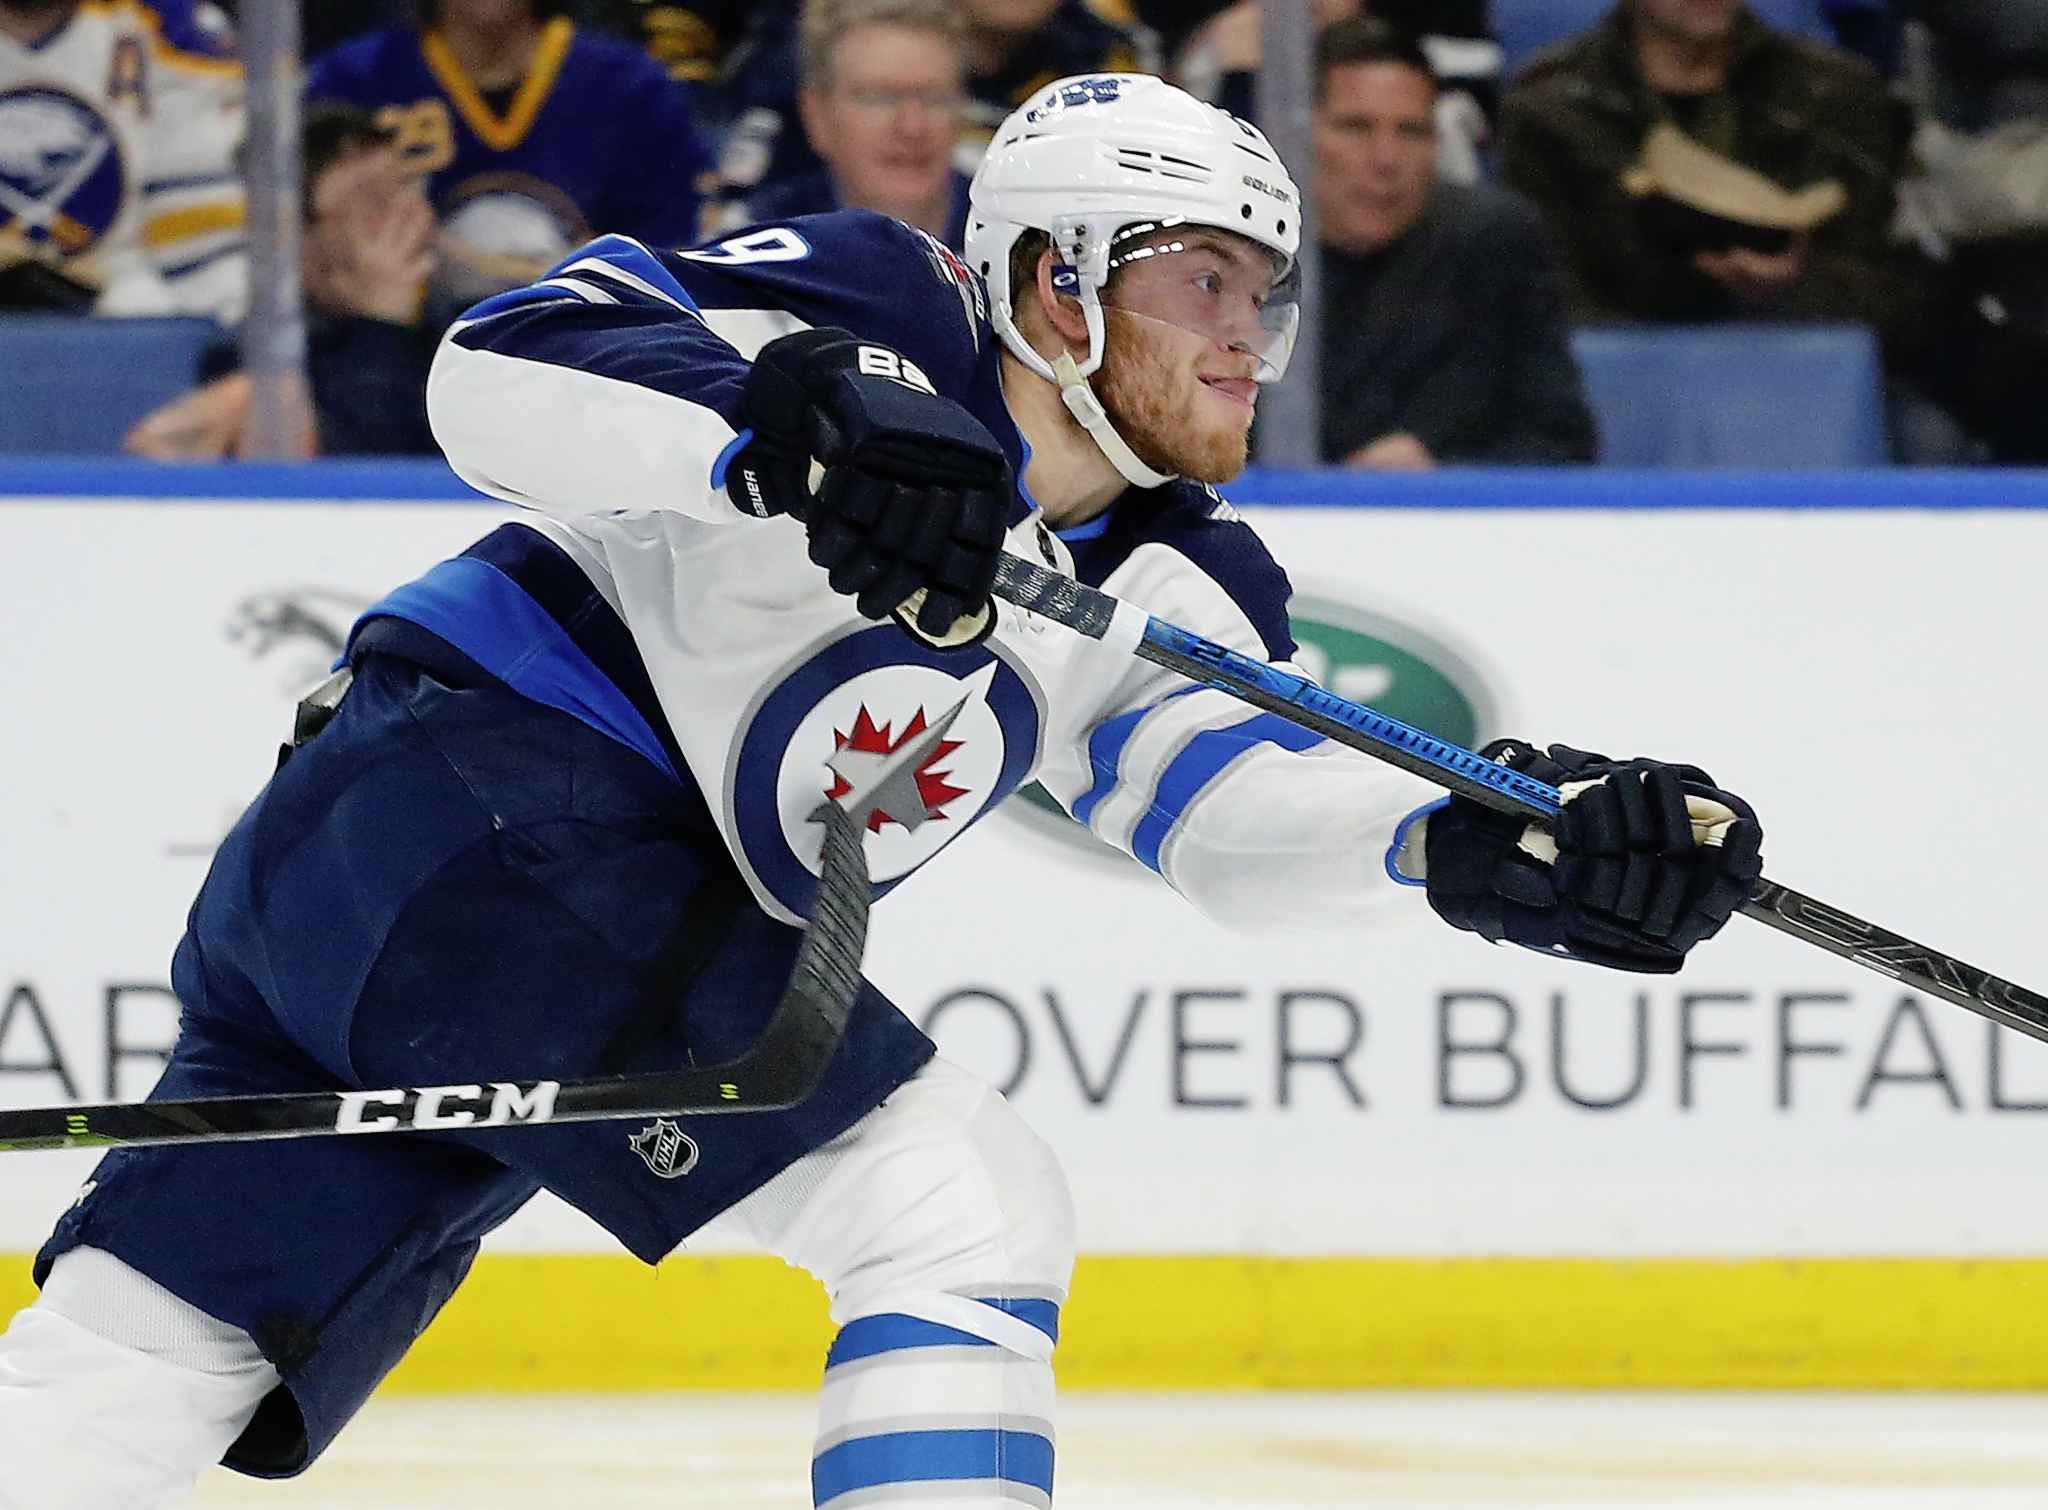 Winnipeg Jets forward Andrew Copp was a healthy scratch by head coach Paul Maurice in the Jets season-ending Game 5 loss to the Vegas Golden Knights in the Western Conference final last year.